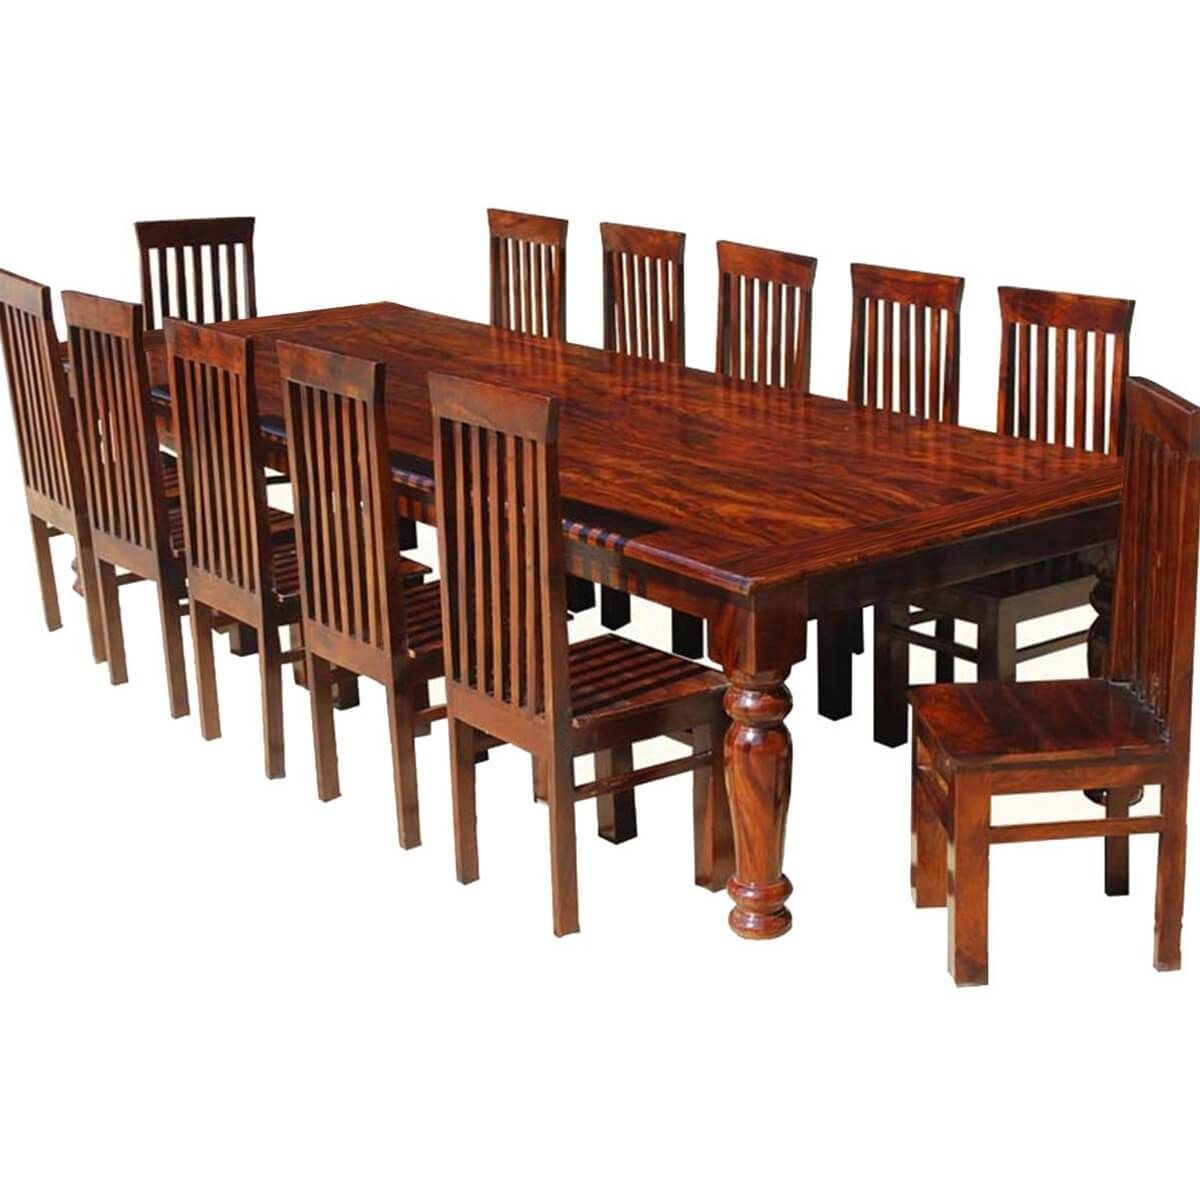 12 Rustic Dining Room Ideas: Clermont Rustic Furniture Solid Wood Large Dining Table